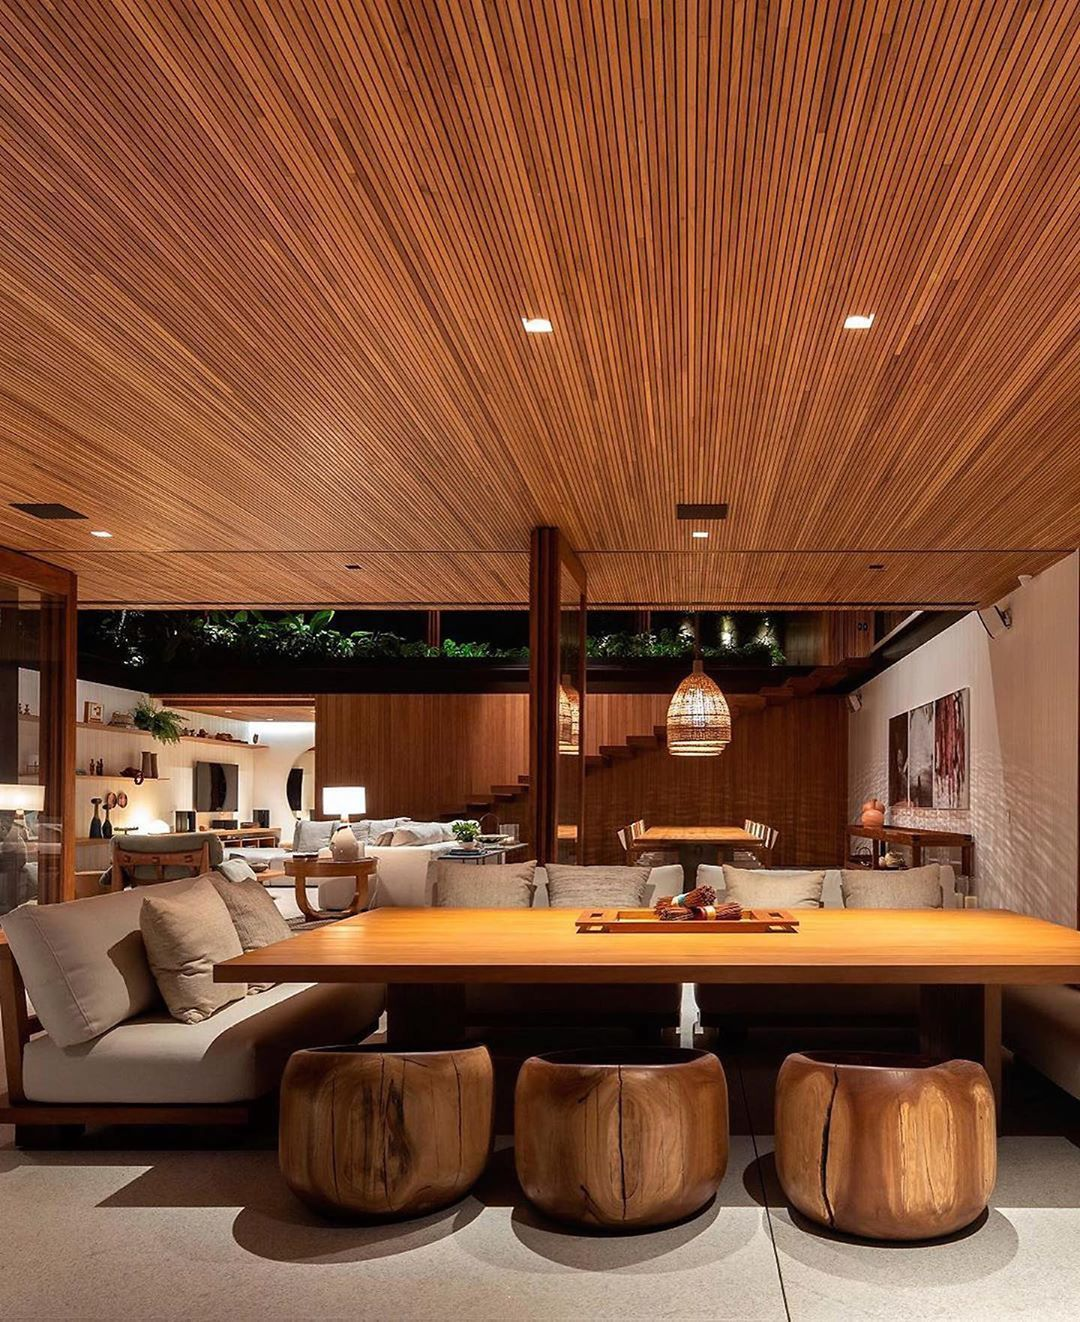 Best Home Decor Stores In San Francisco Interior Design School Top Interior Design Firms Interior Design Firms